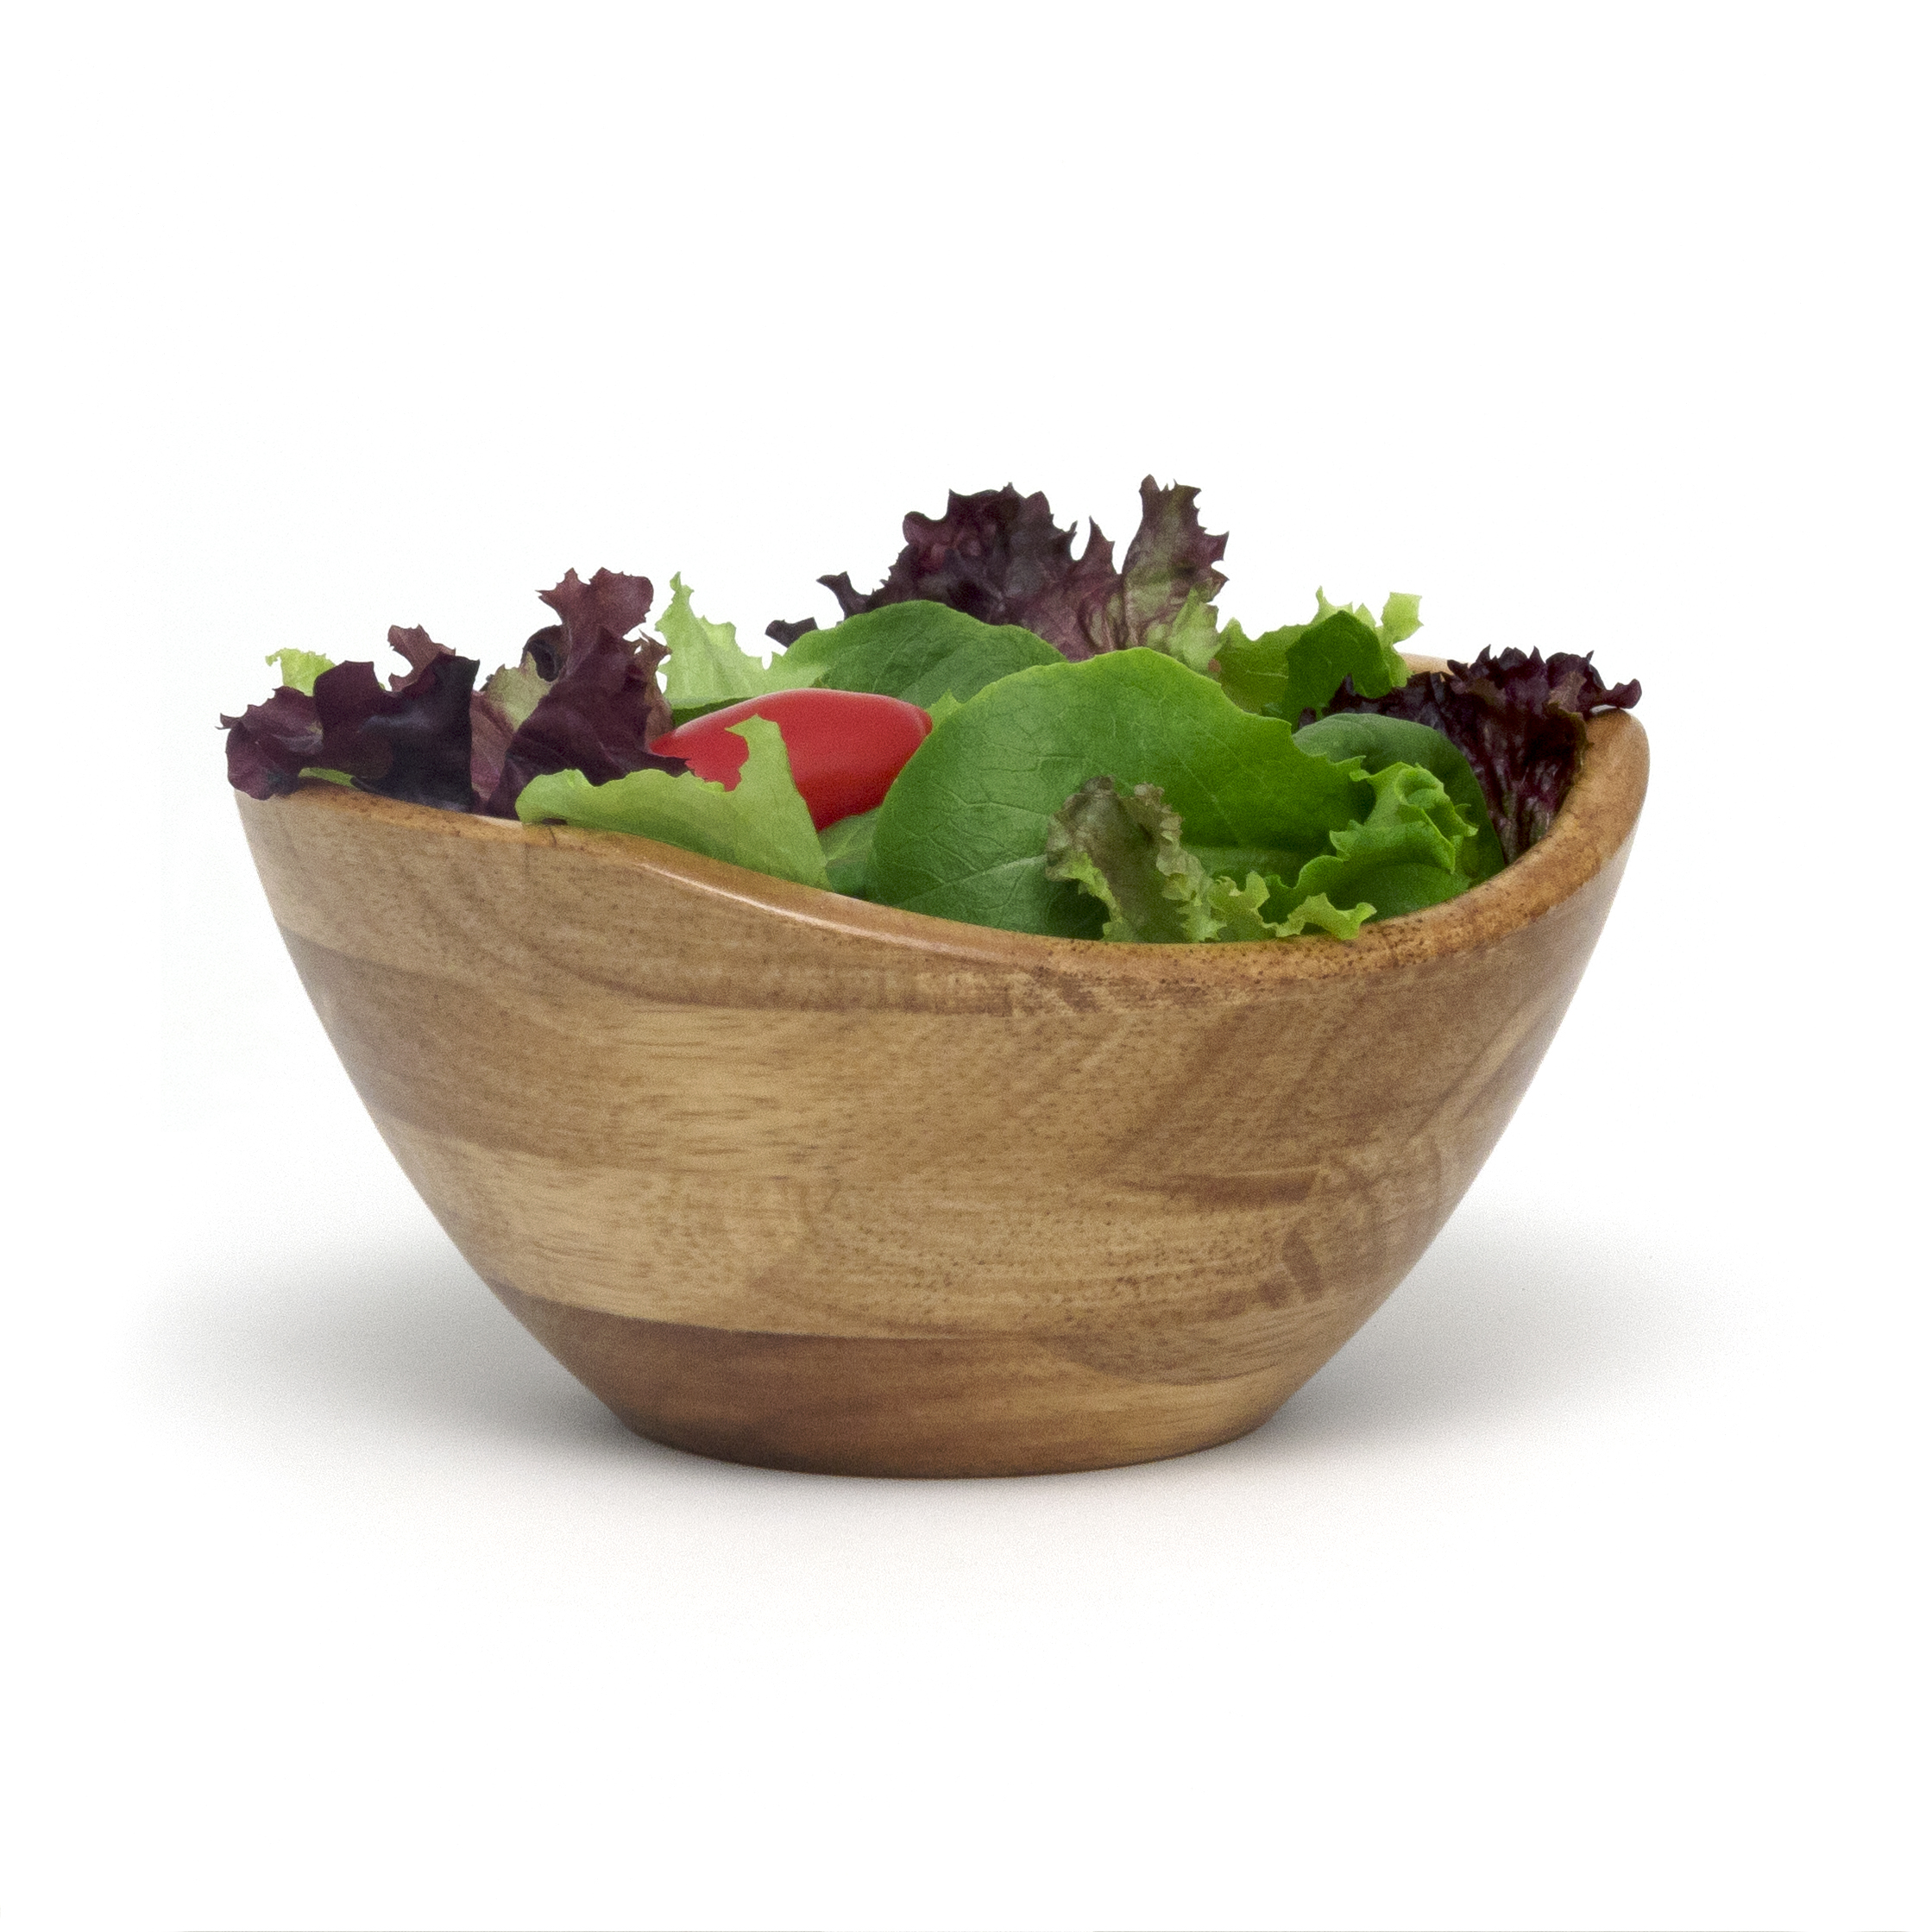 LIPPER 3173 WAVY RIM BOWLS WITH OAK FINISH HAVE A CLASSIC